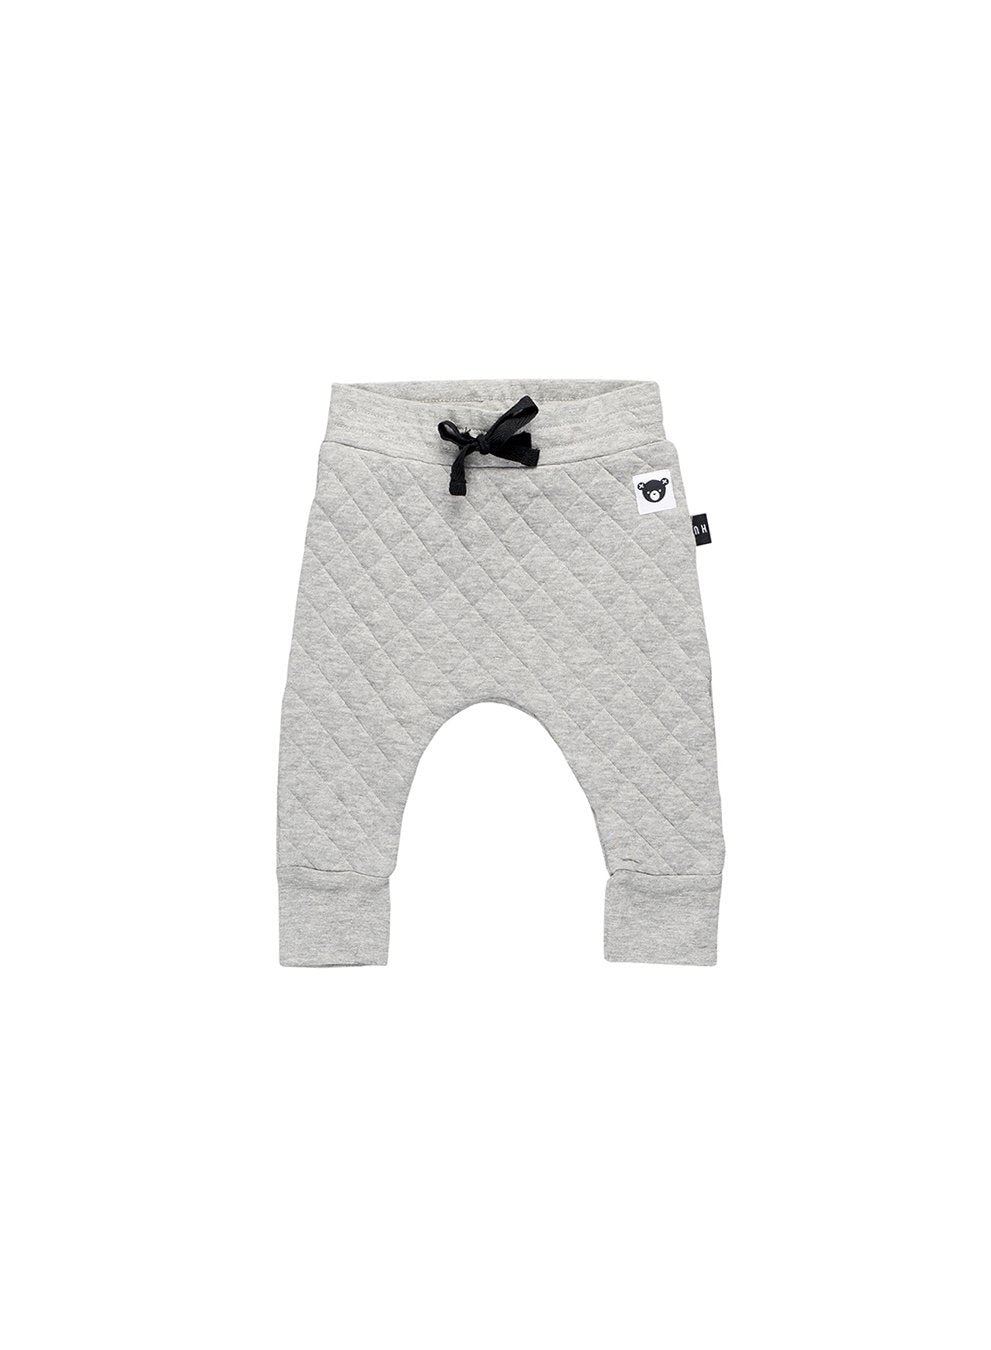 Huxbaby Stitch Dc Pant Grey Marle-pant-HUXBABY- babies, kids and moms fashion, decor and accessories at Modern Kids Society USA